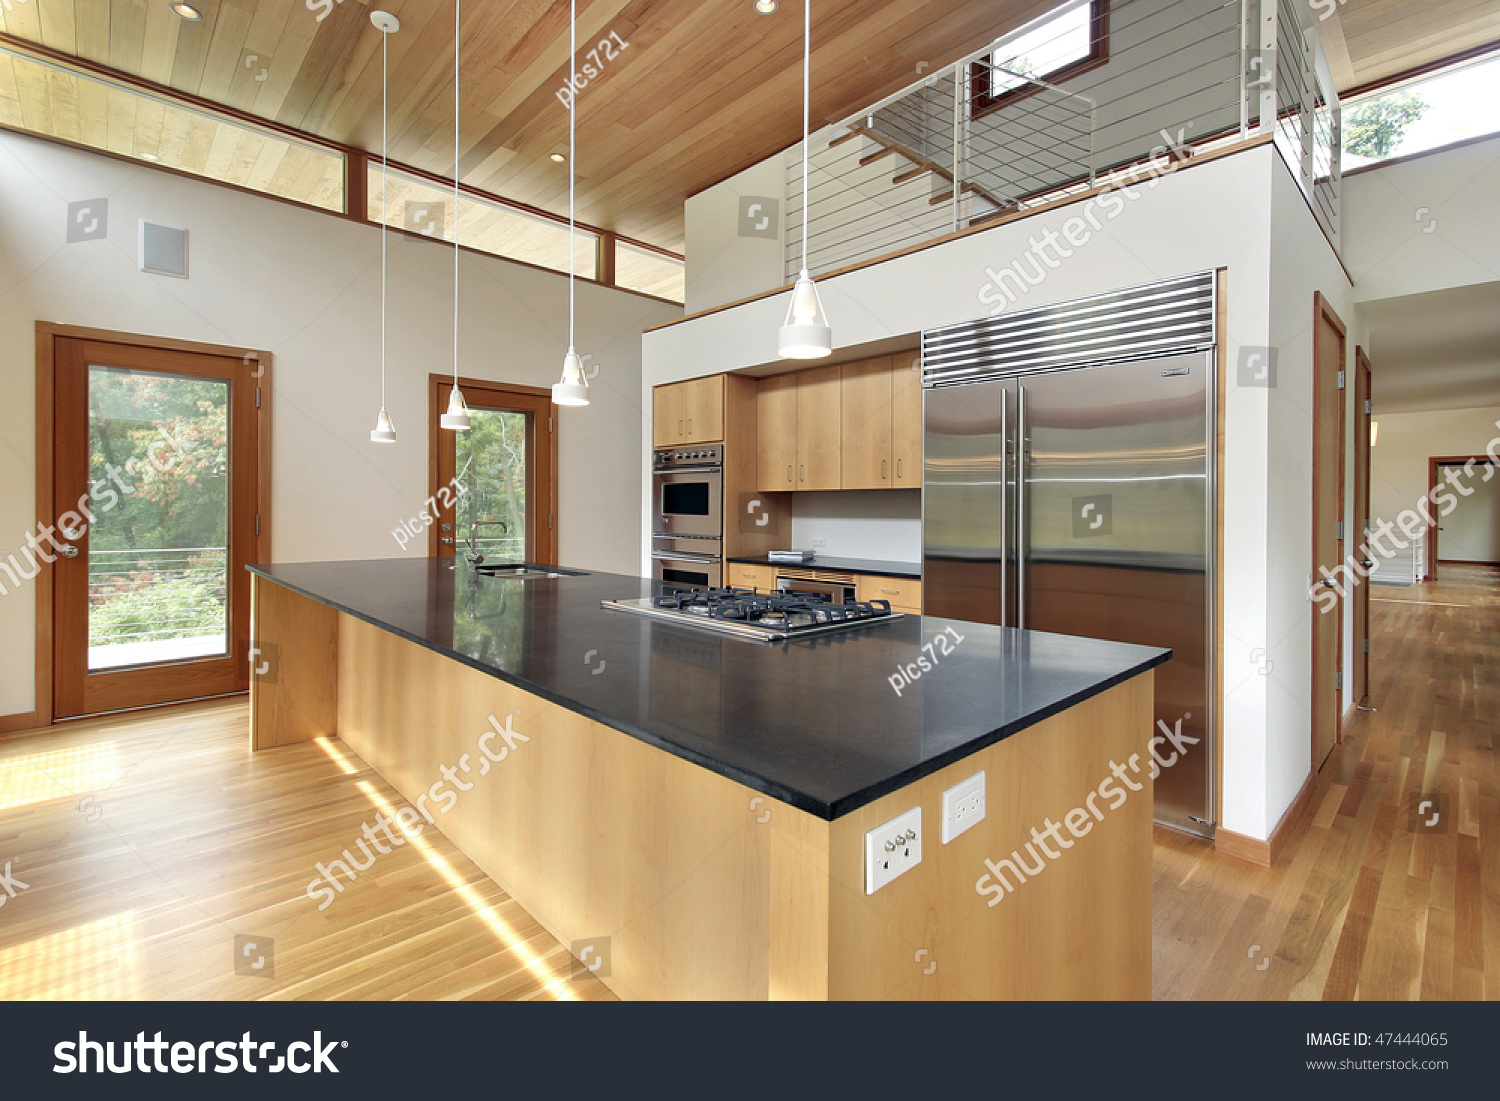 Granite Island Kitchen Kitchen In Ultra Modern Home With Black Granite Island Stock Photo